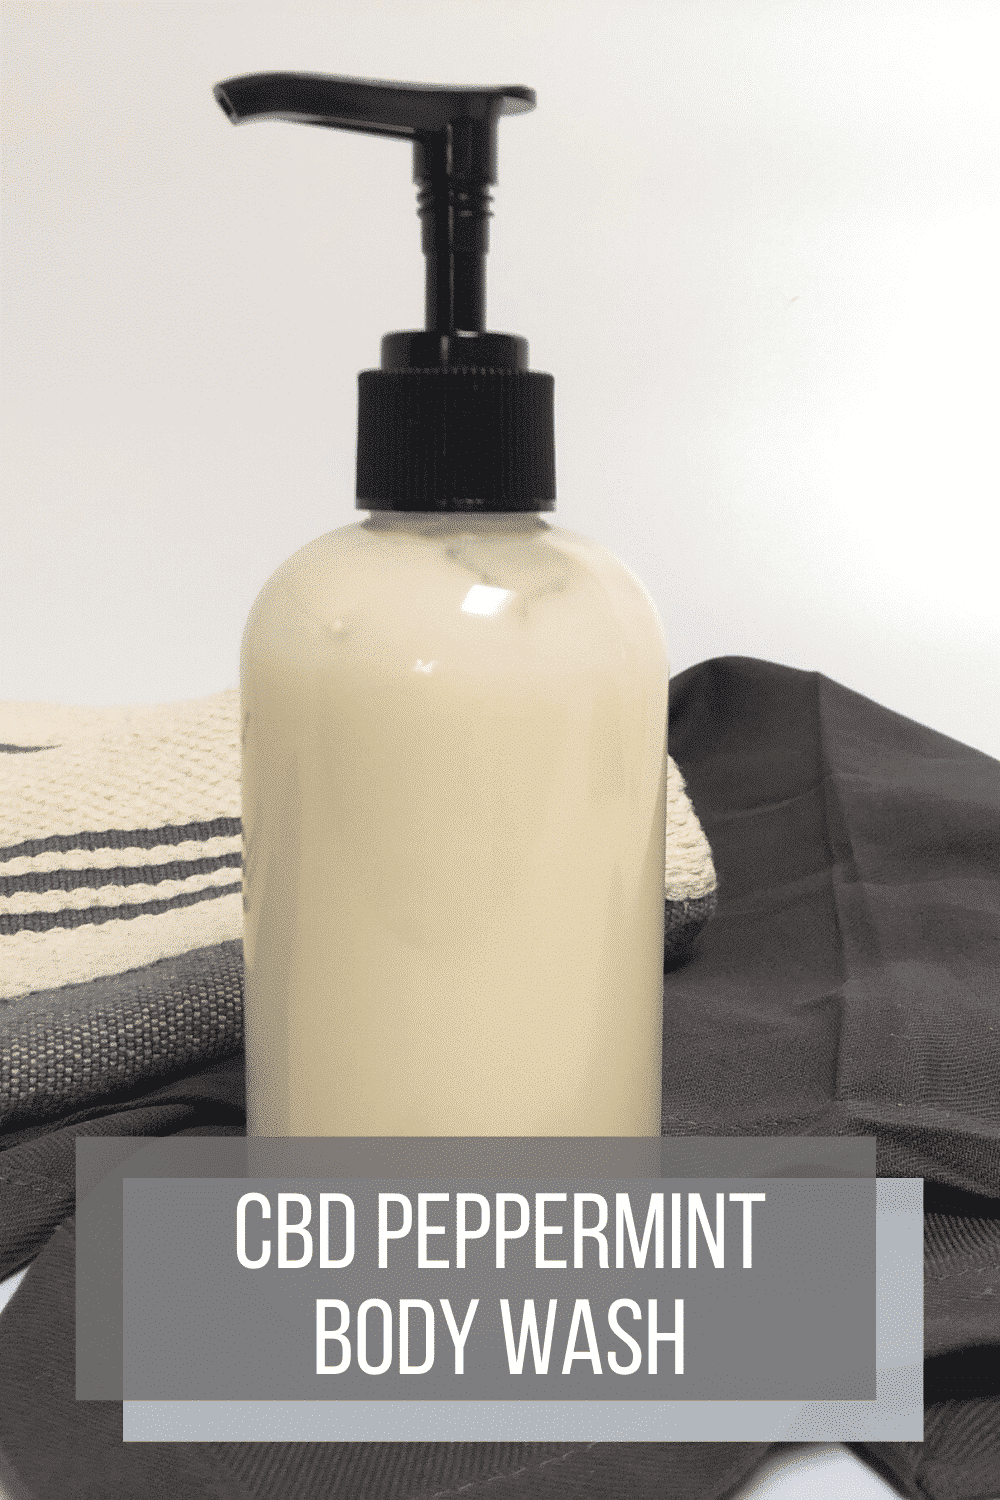 CBD Peppermint Body Wash